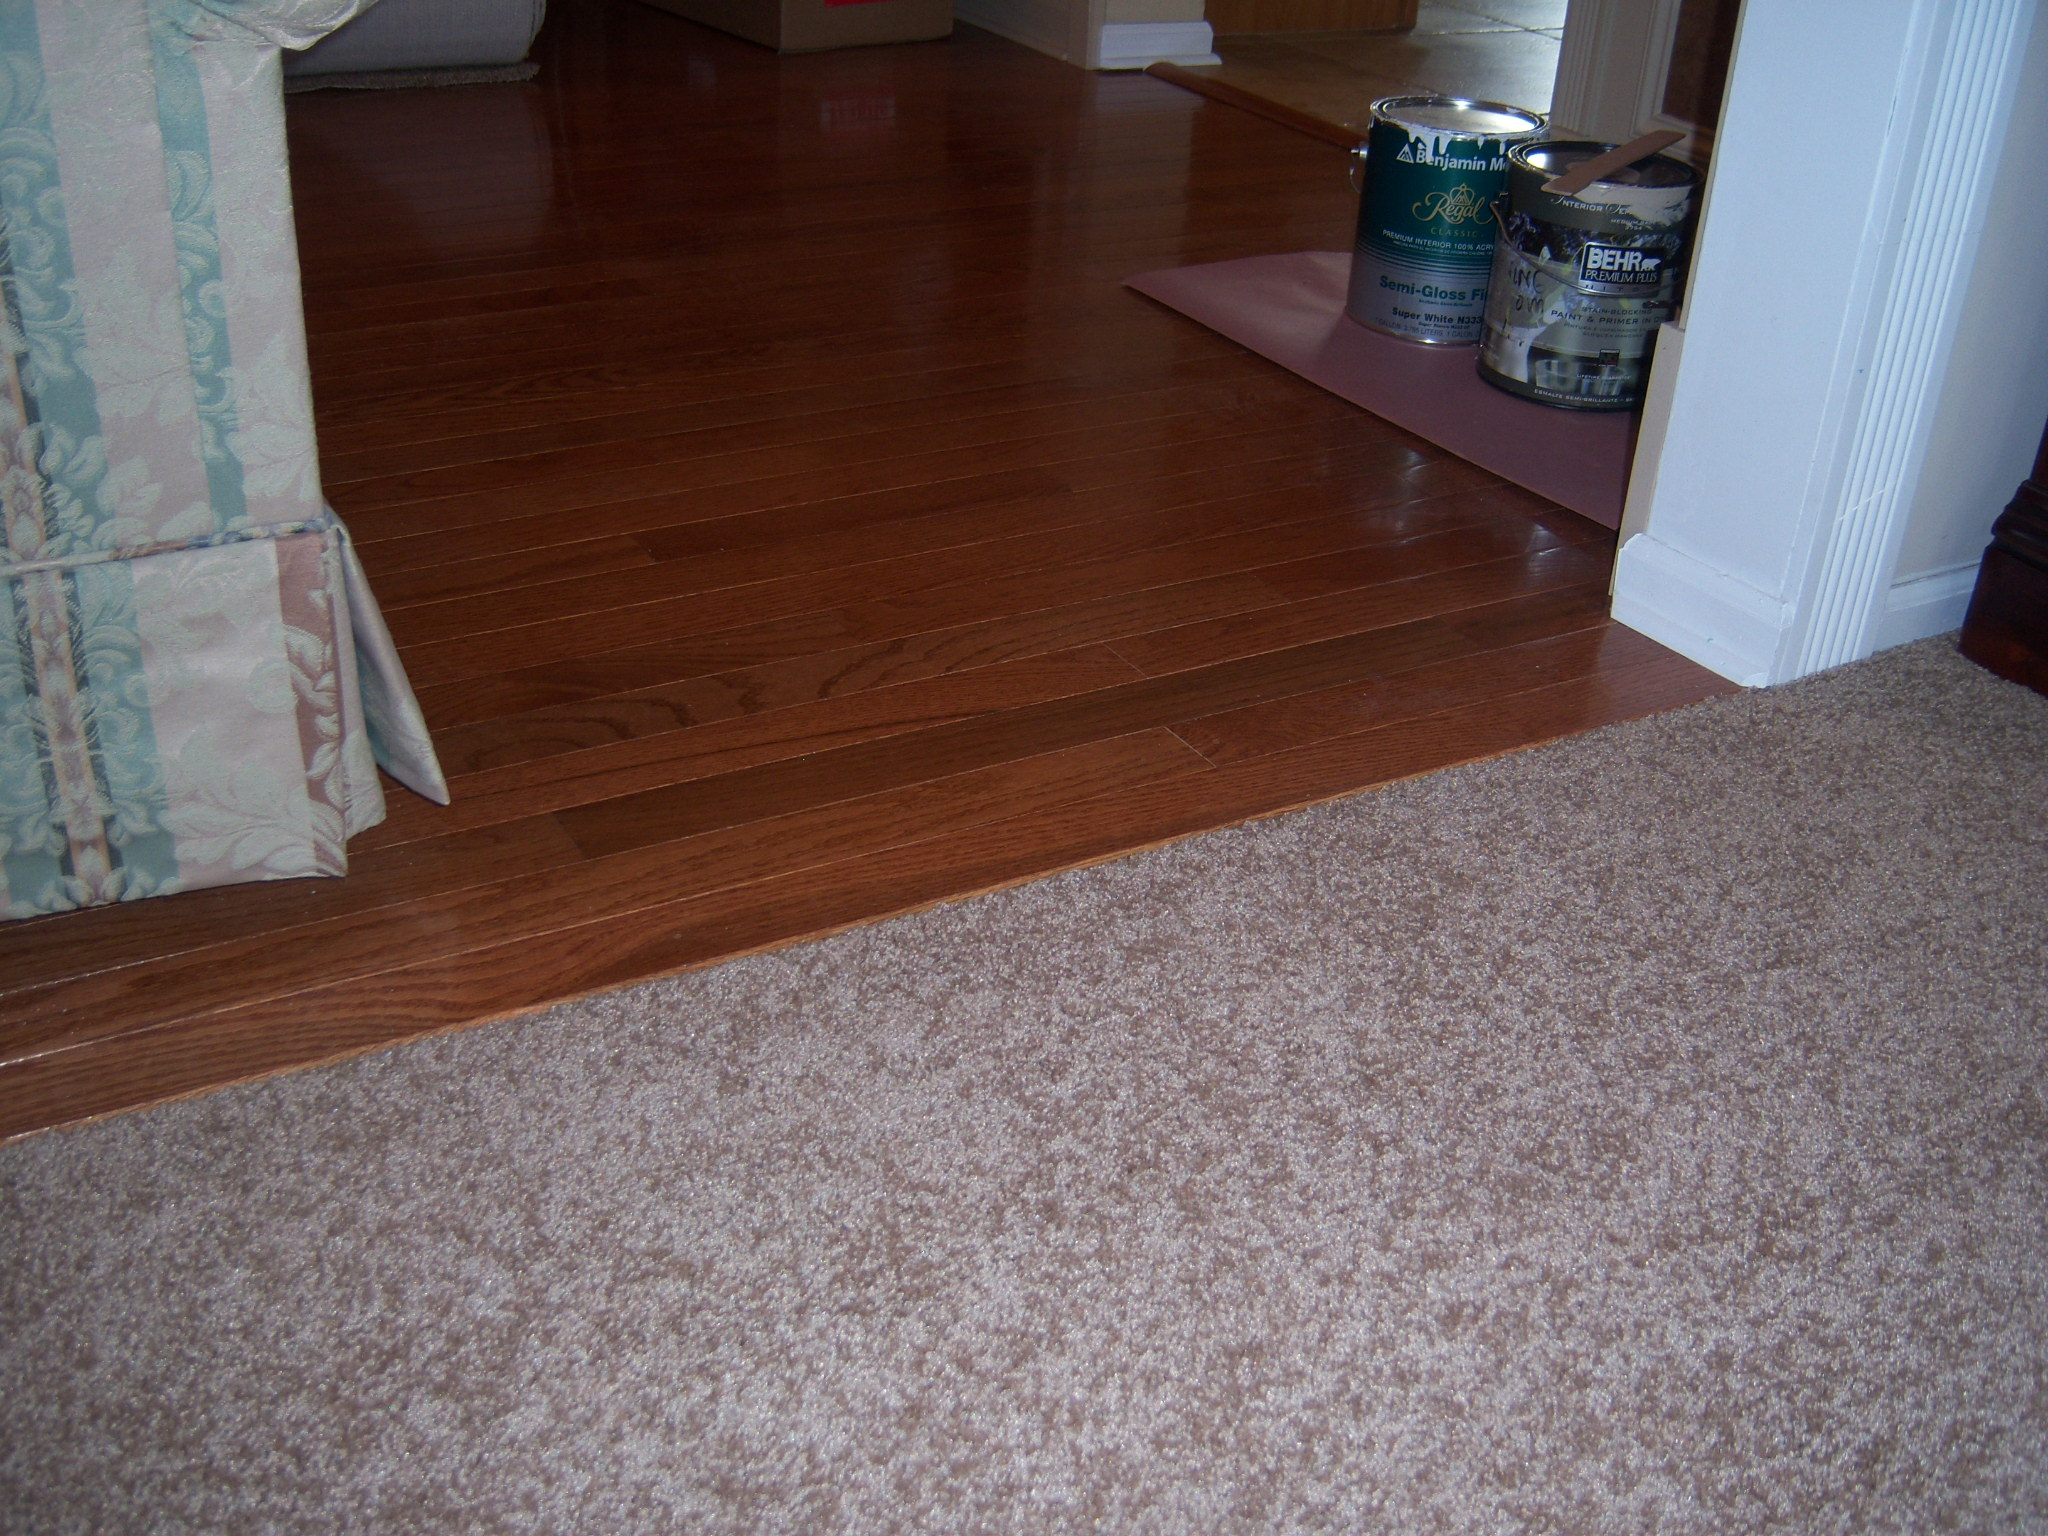 Carpet over hardwood transition carpet vidalondon for Laminate flooring to carpet